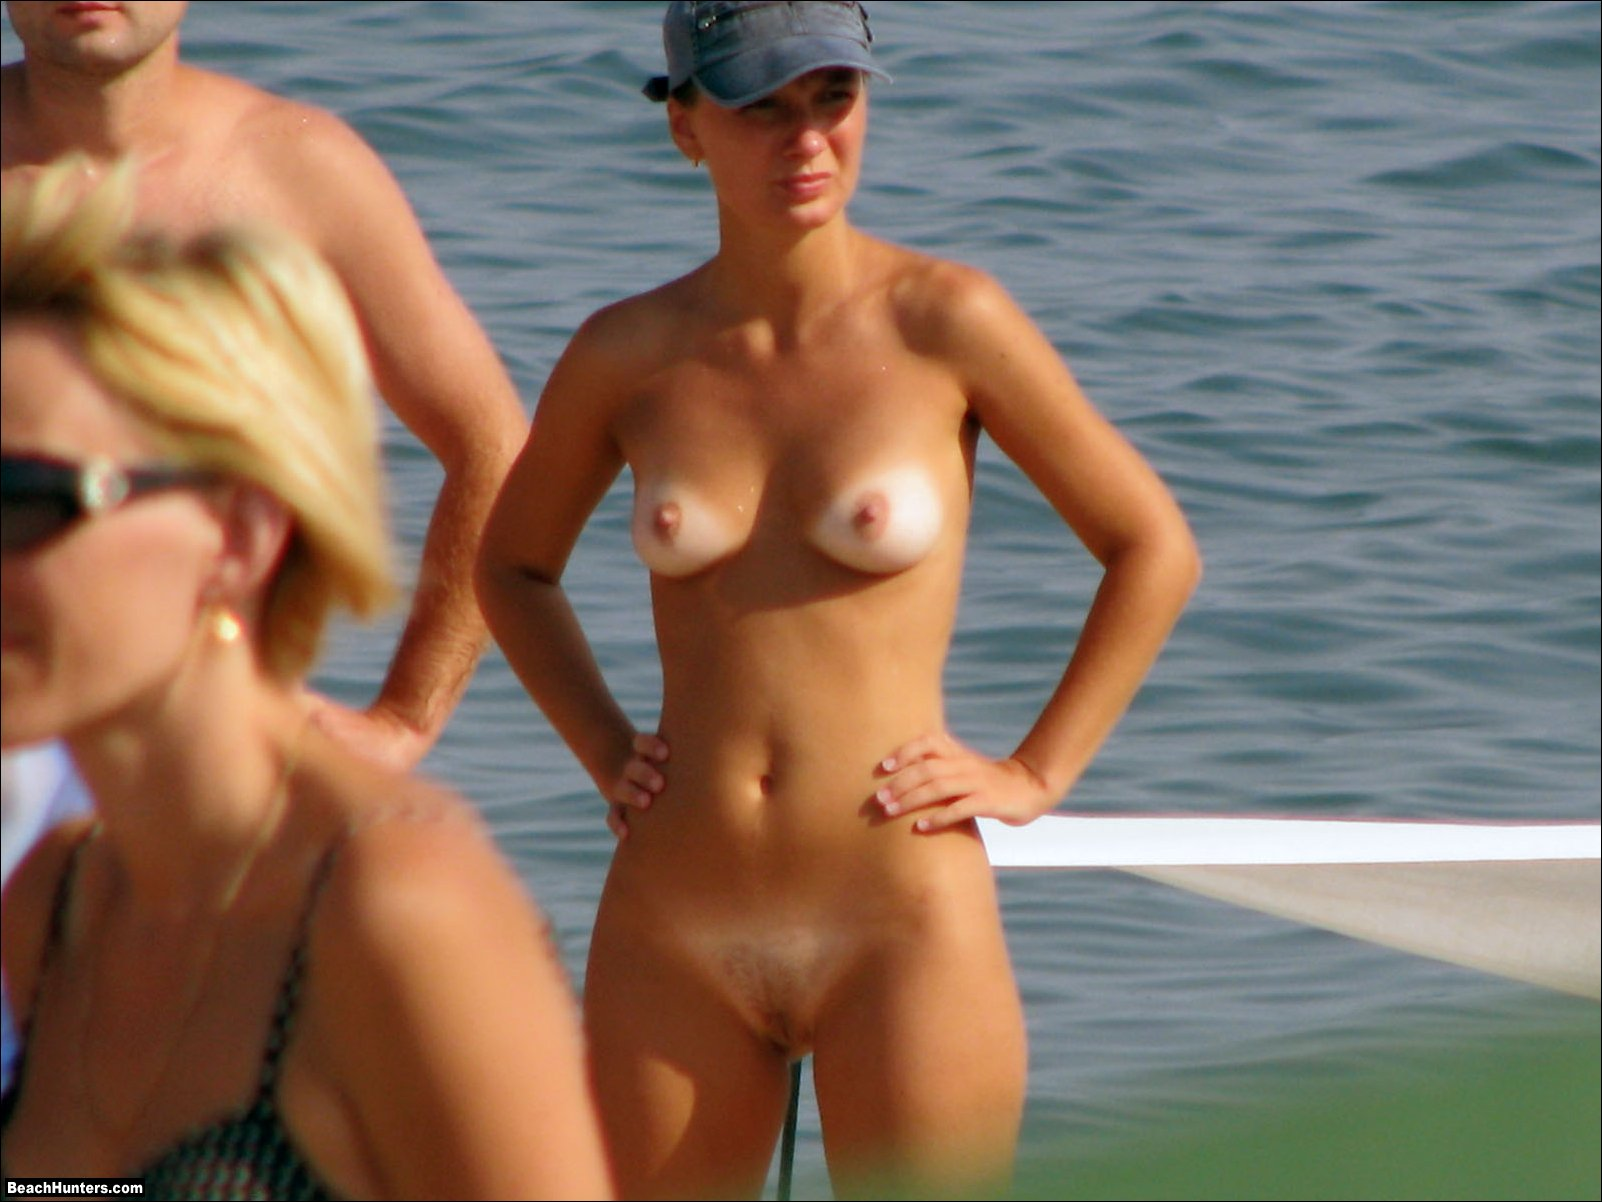 Nude beach volleyball